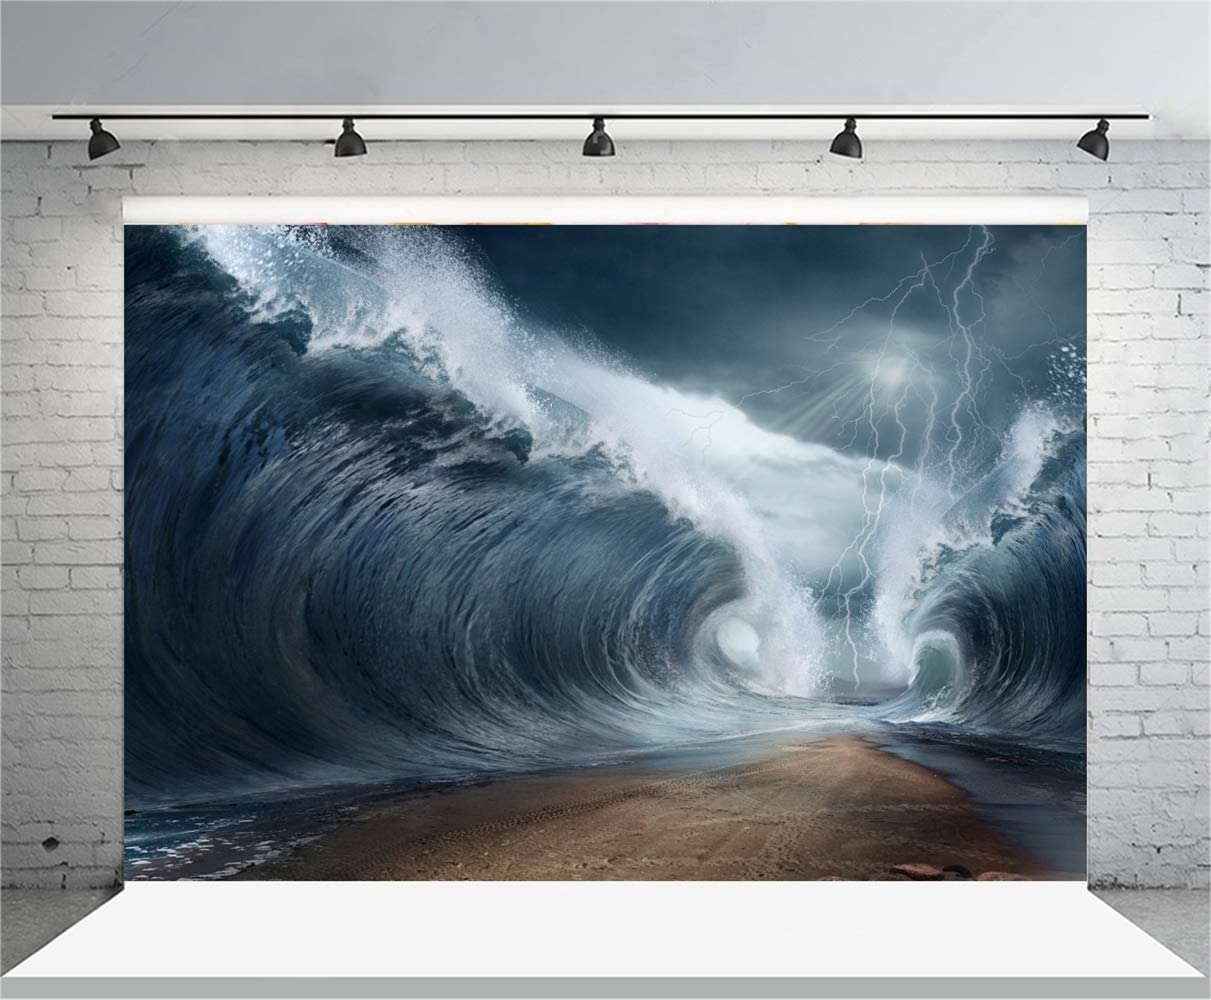 8x6.5ft Marine Theme Polyester Photography Background Spectacle Huge Sea Wave Thunderstorm Scenic Backdrops Child Kids Adult Artistic Portrait Shoot Nature Phenomenon Road Between Water Scene